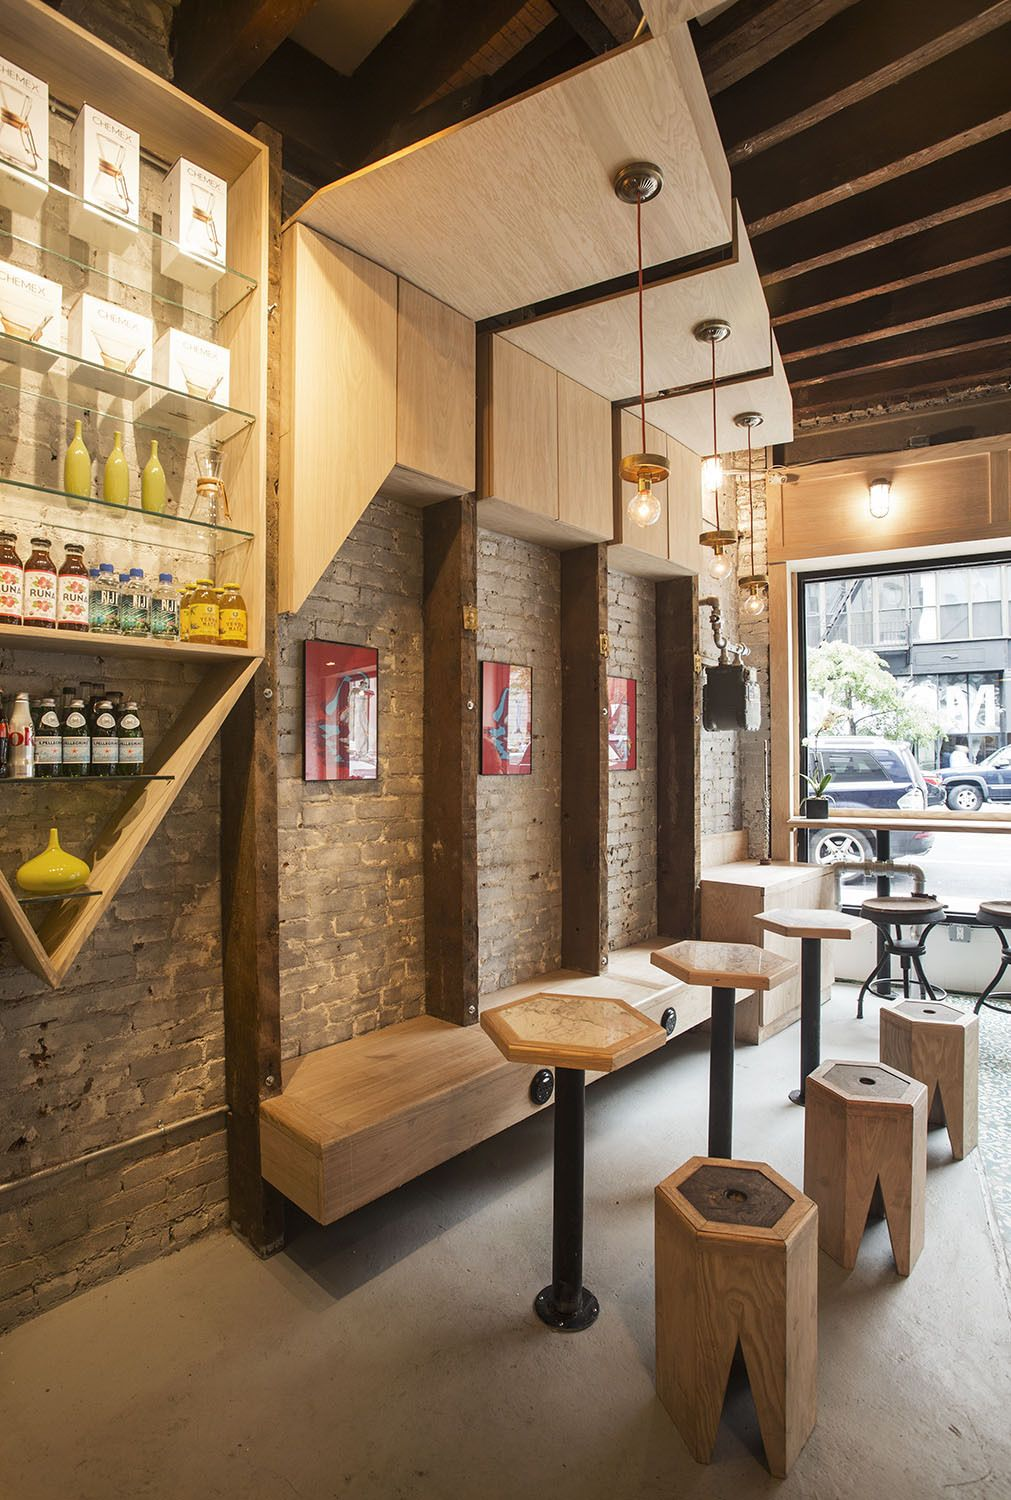 Iconic Cafe | Small cafe design, Cafe interior design ...